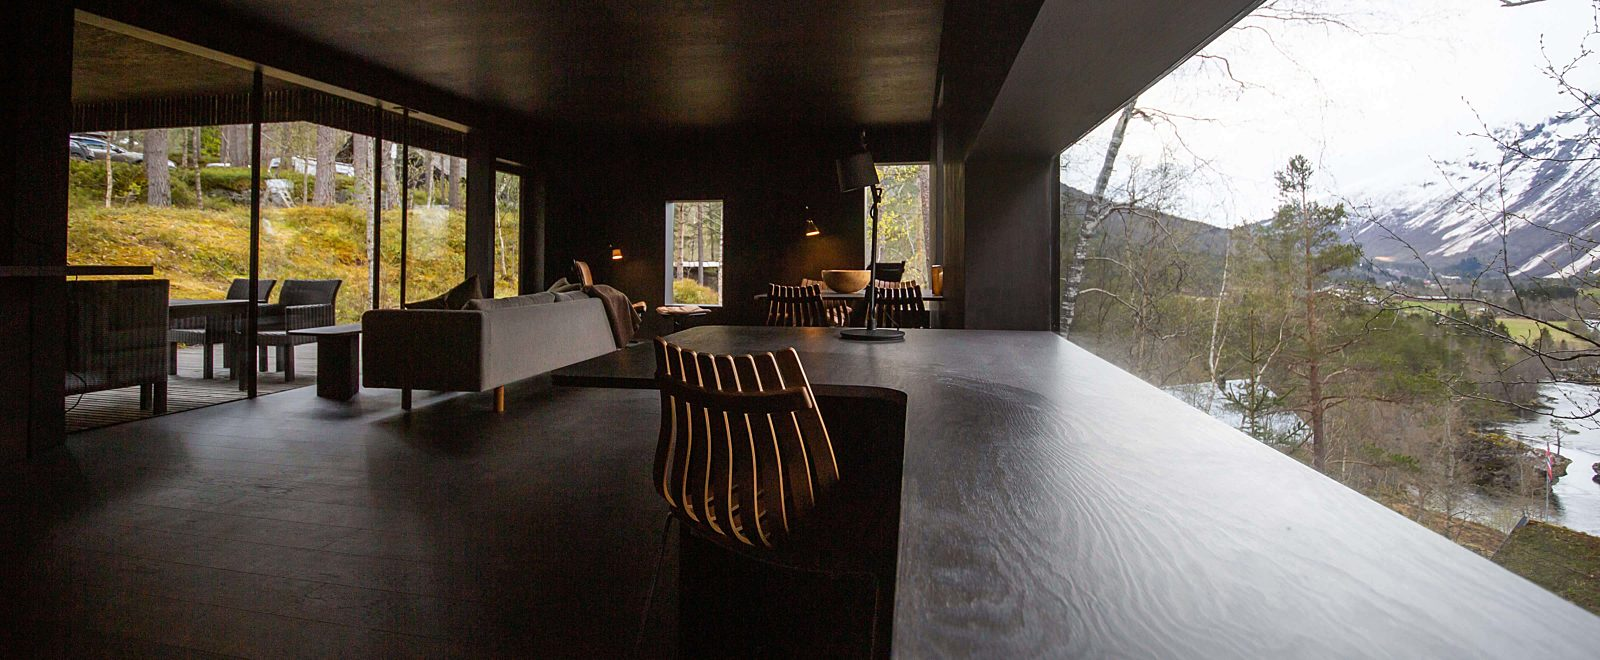 Interior view of Writer's Lodge at Juvet Landscape Hotel.